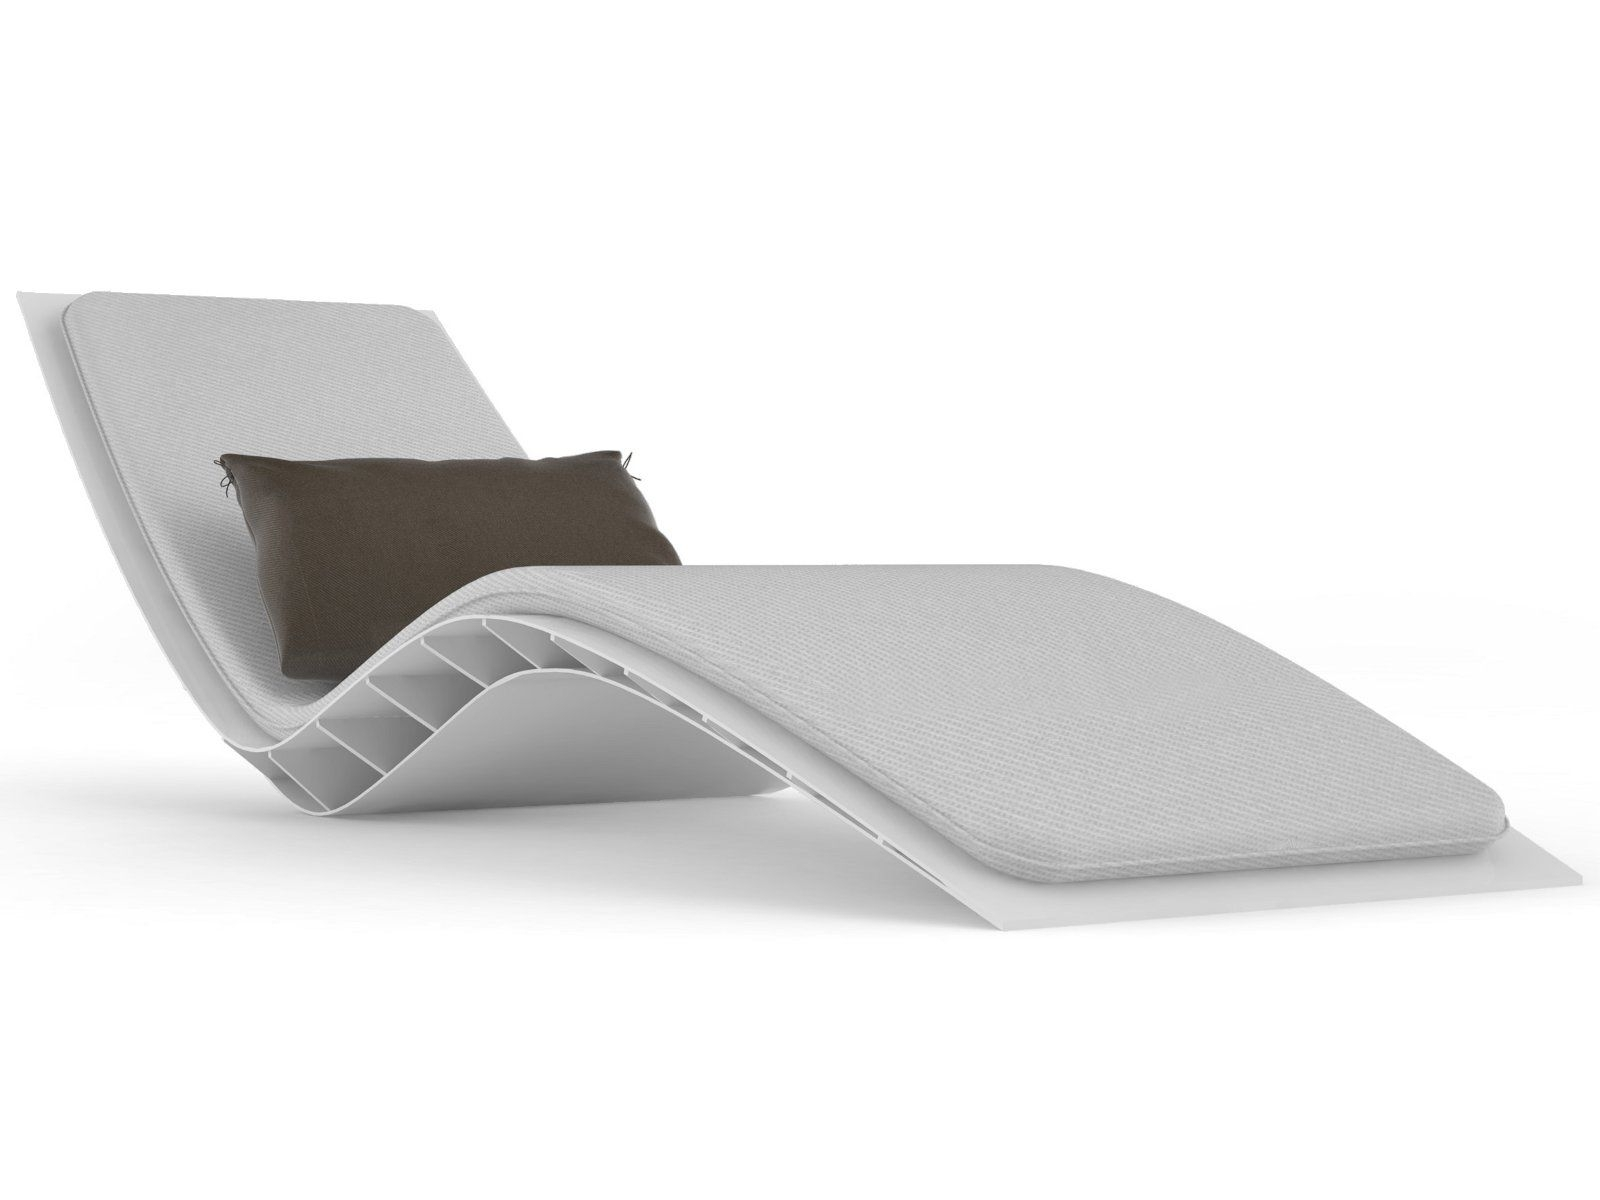 Awesome Modern Chaise Lounge Chair Cushions For Relaxing (View 1 of 15)